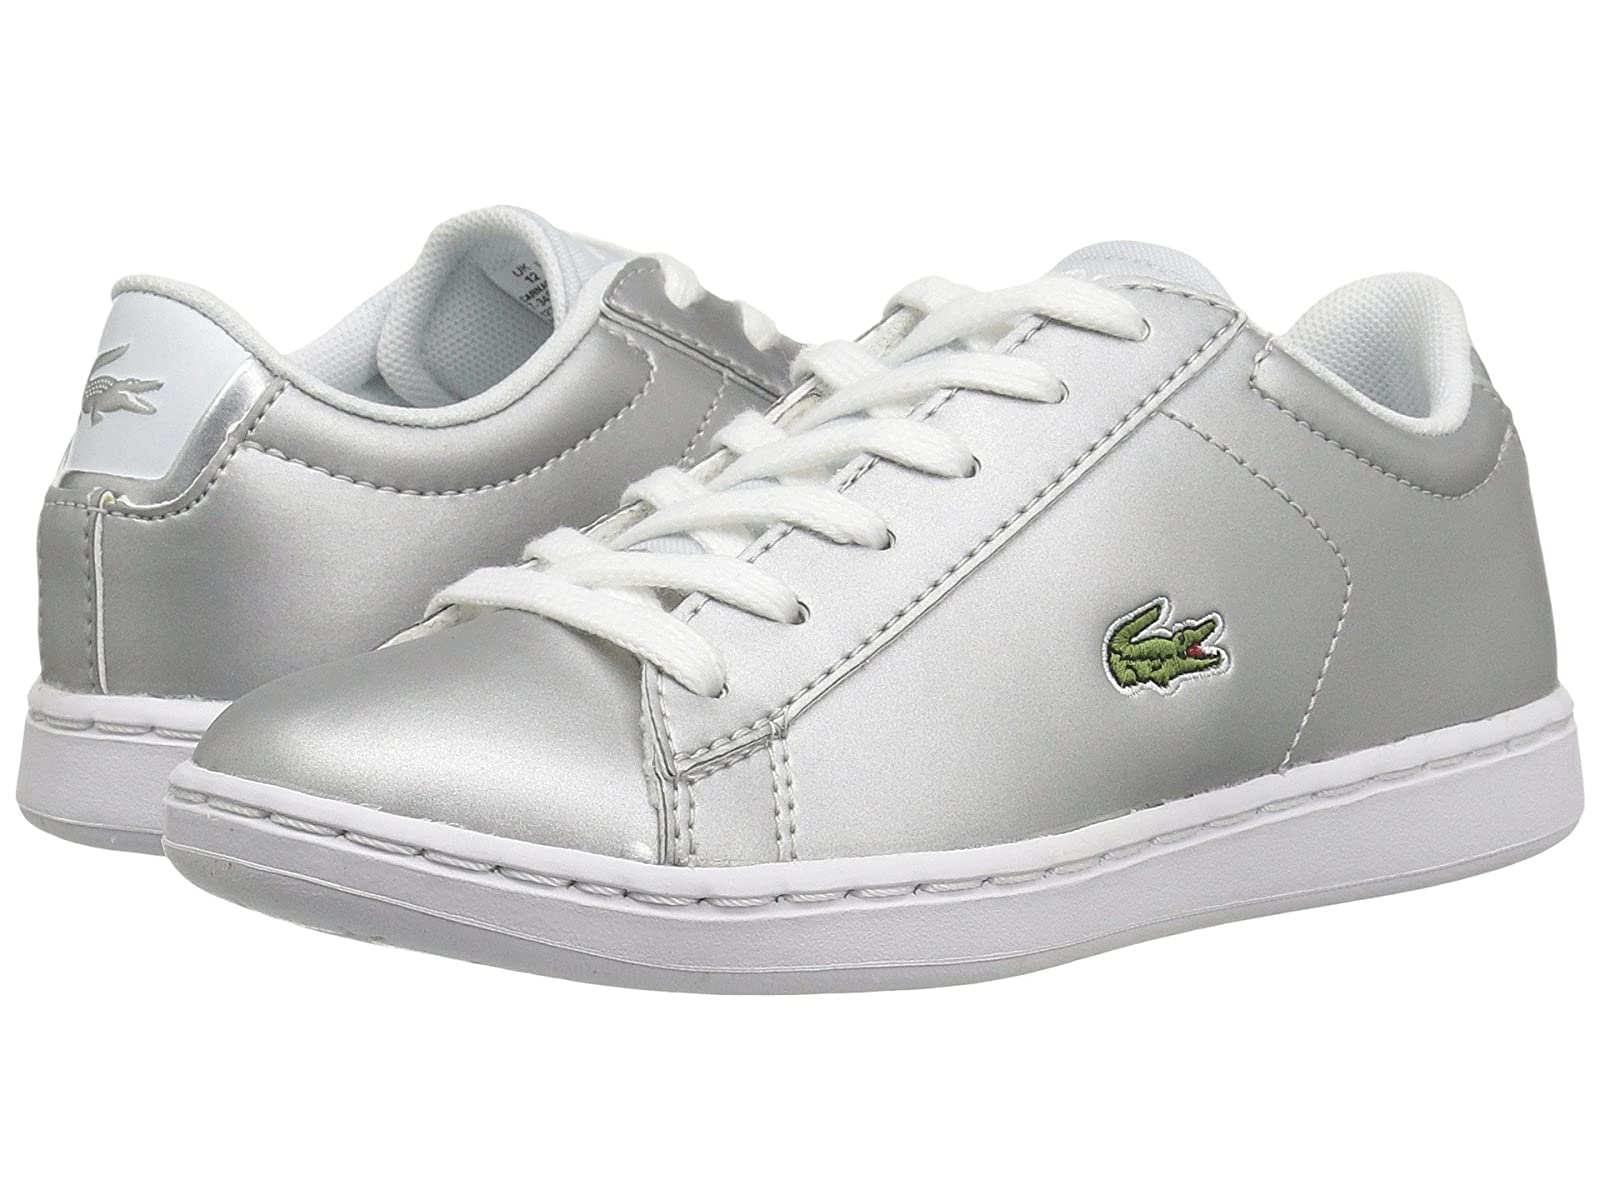 Lacoste Kids Carnaby Evo 317 6 (Little Kid)Cheap and distinctive eye-catching shoes